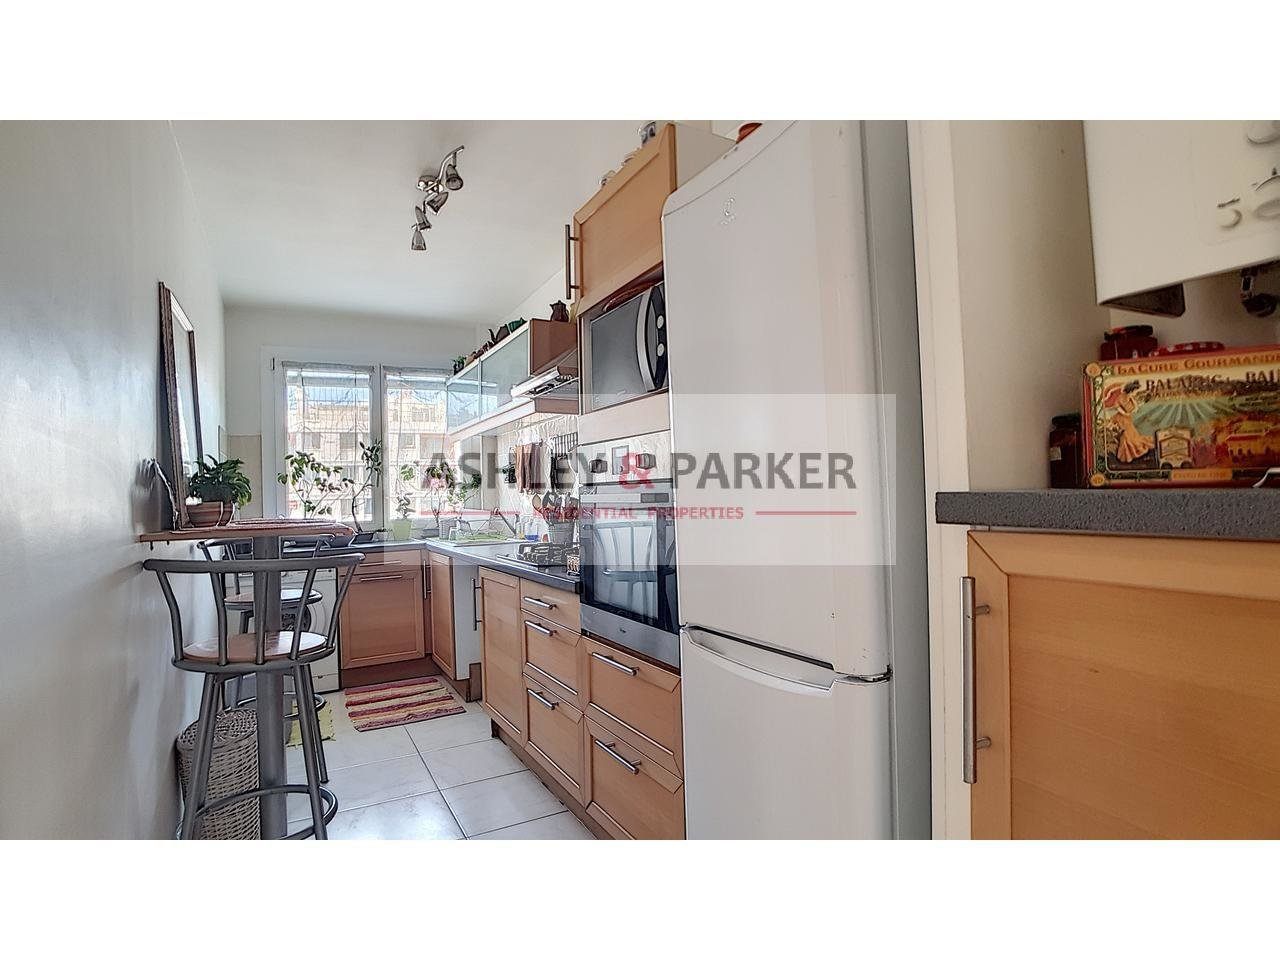 Apartment  3 Rooms 68 m²  for sale